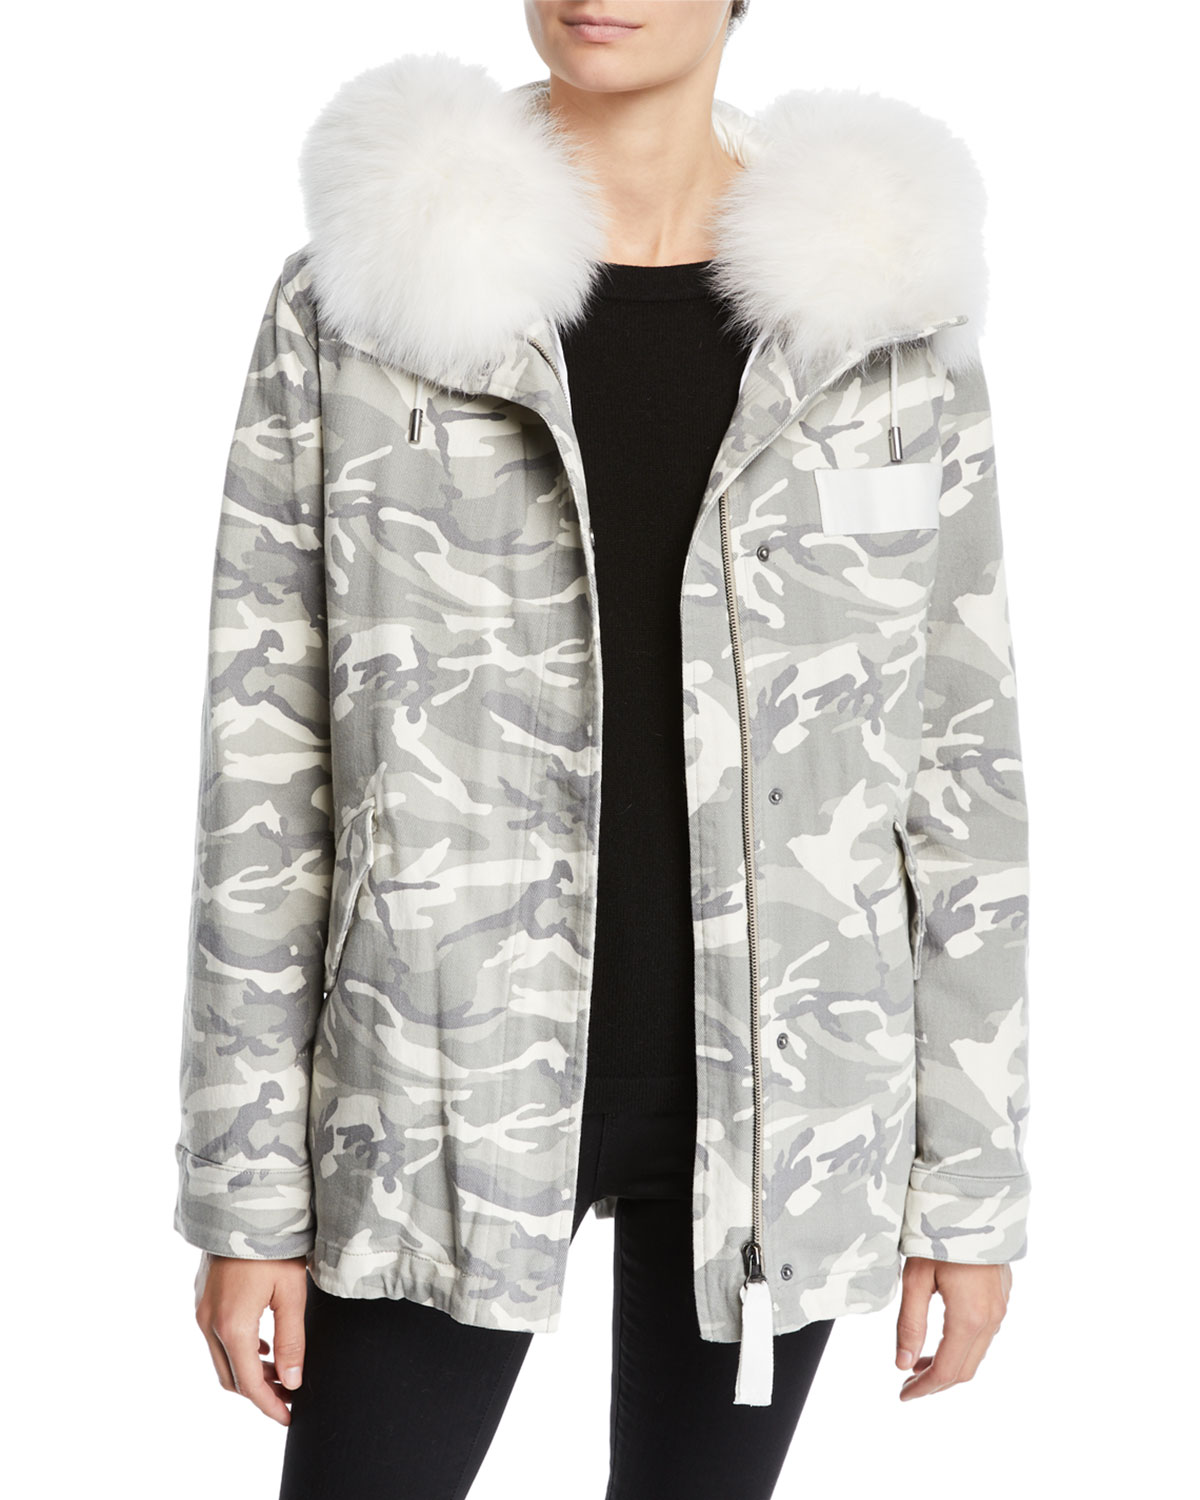 b3101e8e6f6c Yves Salomon - Army Slim Reversible Camo   Fur Puffer Jacket ...